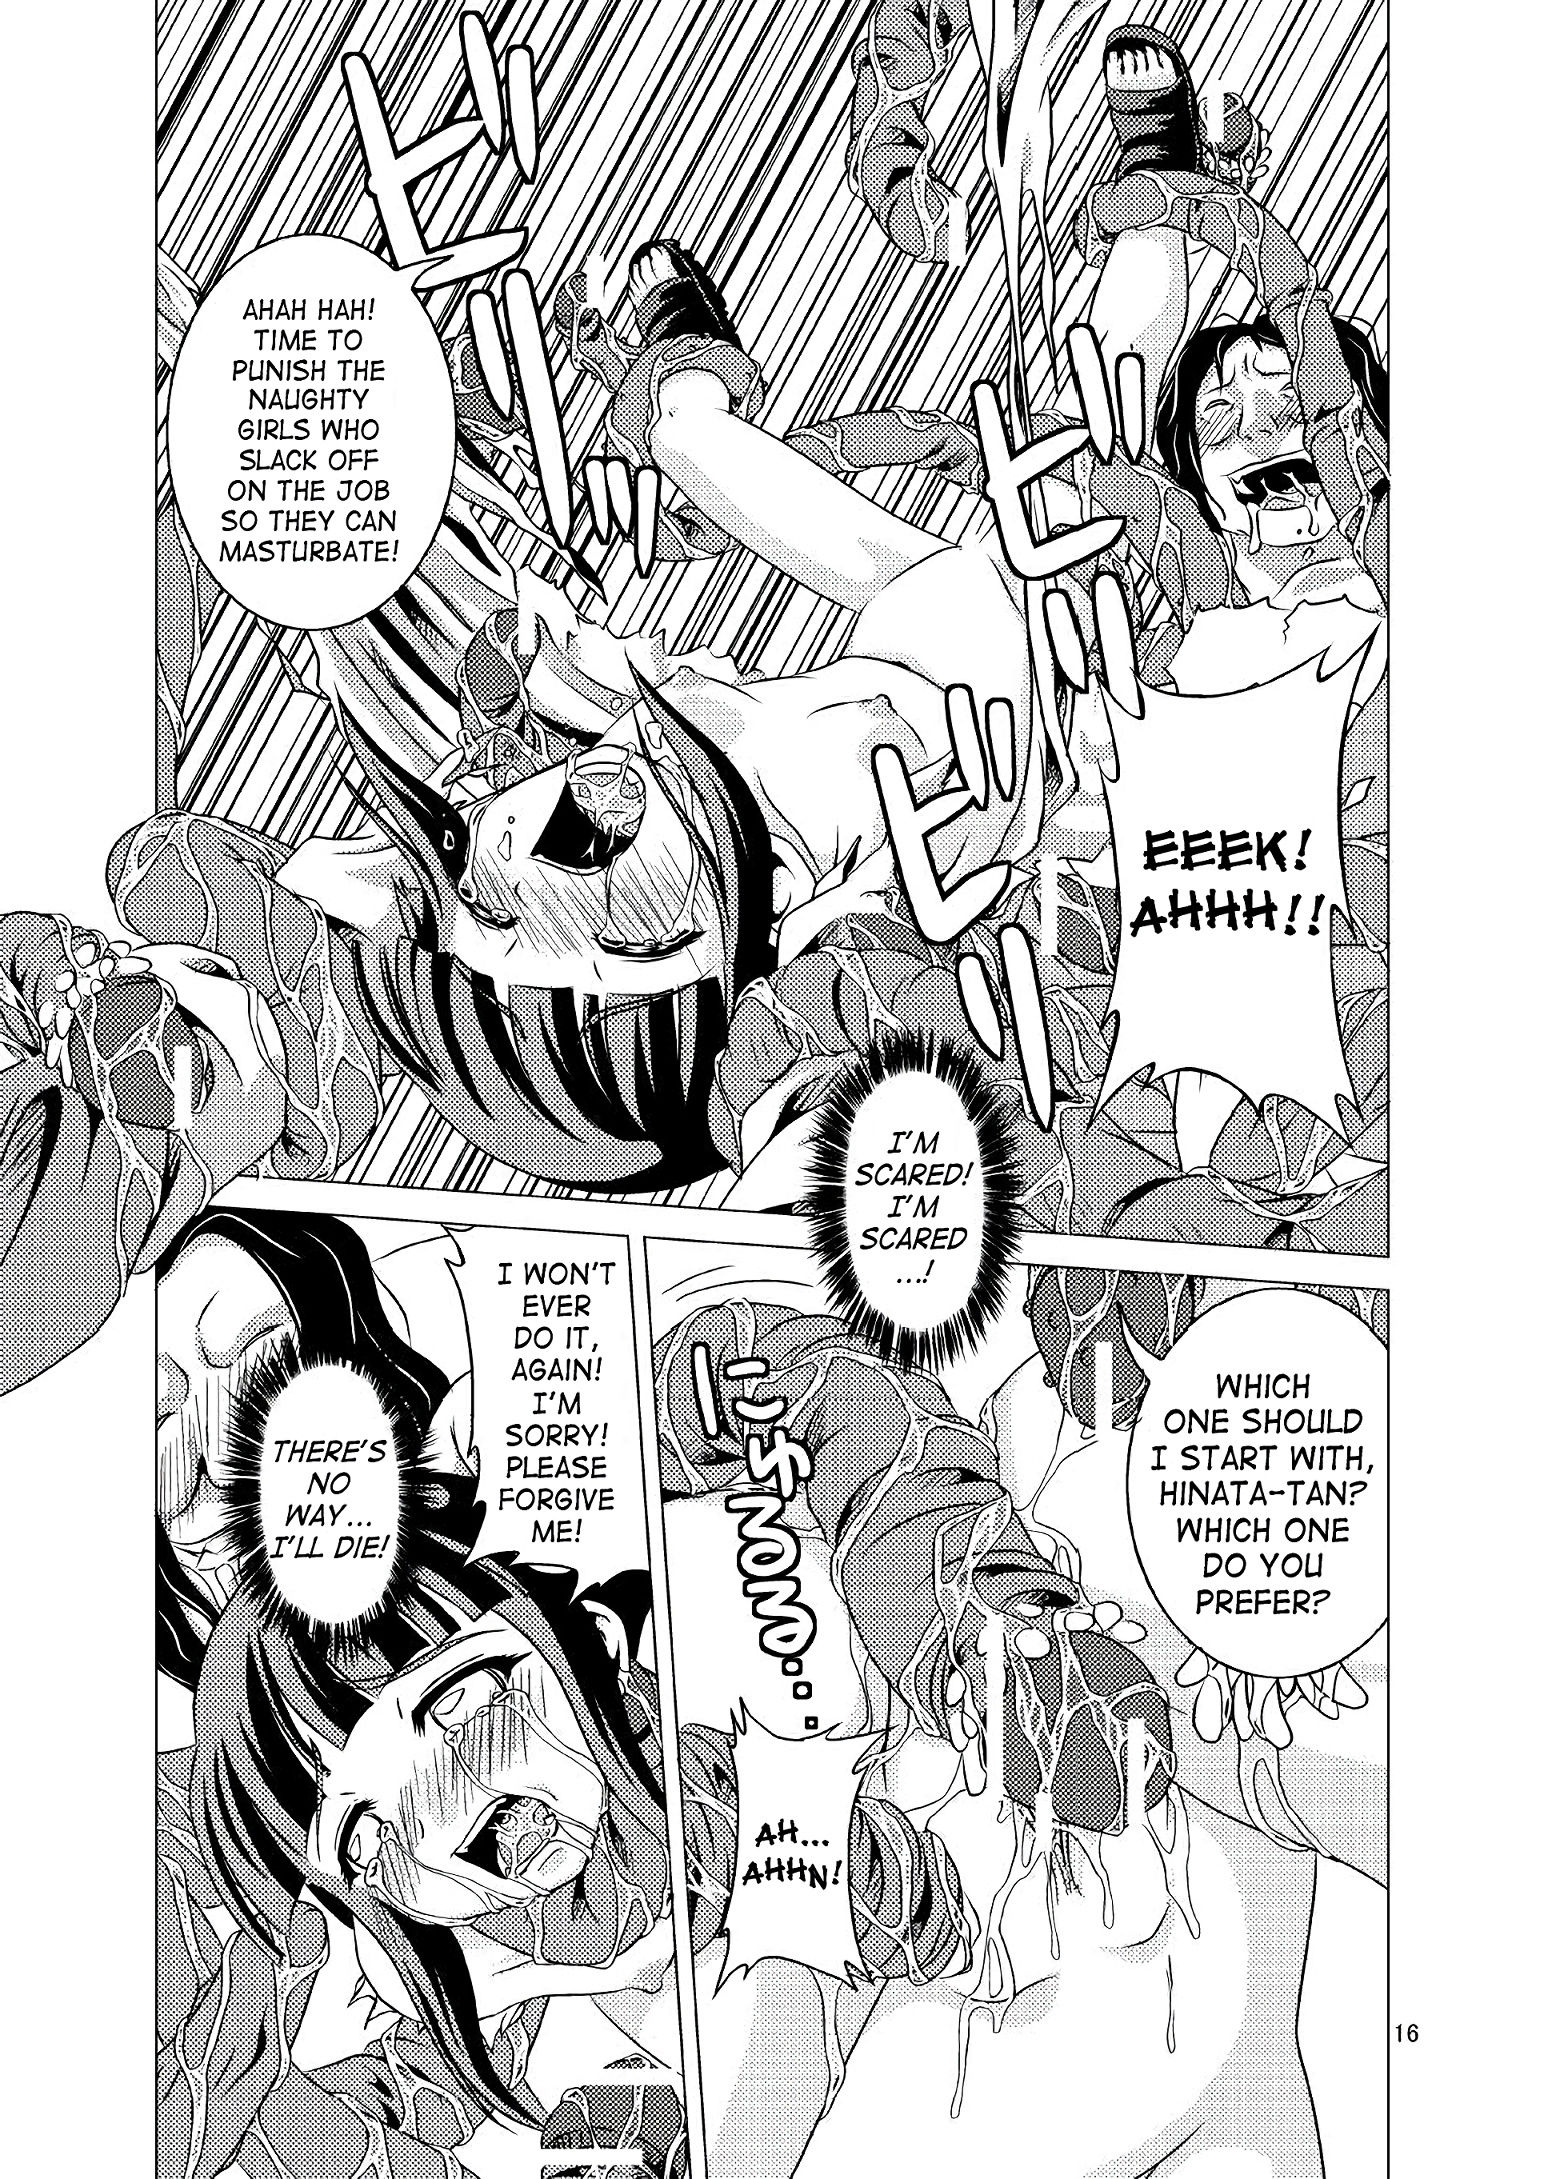 Midsummer red dragonfly hentai manga picture 15